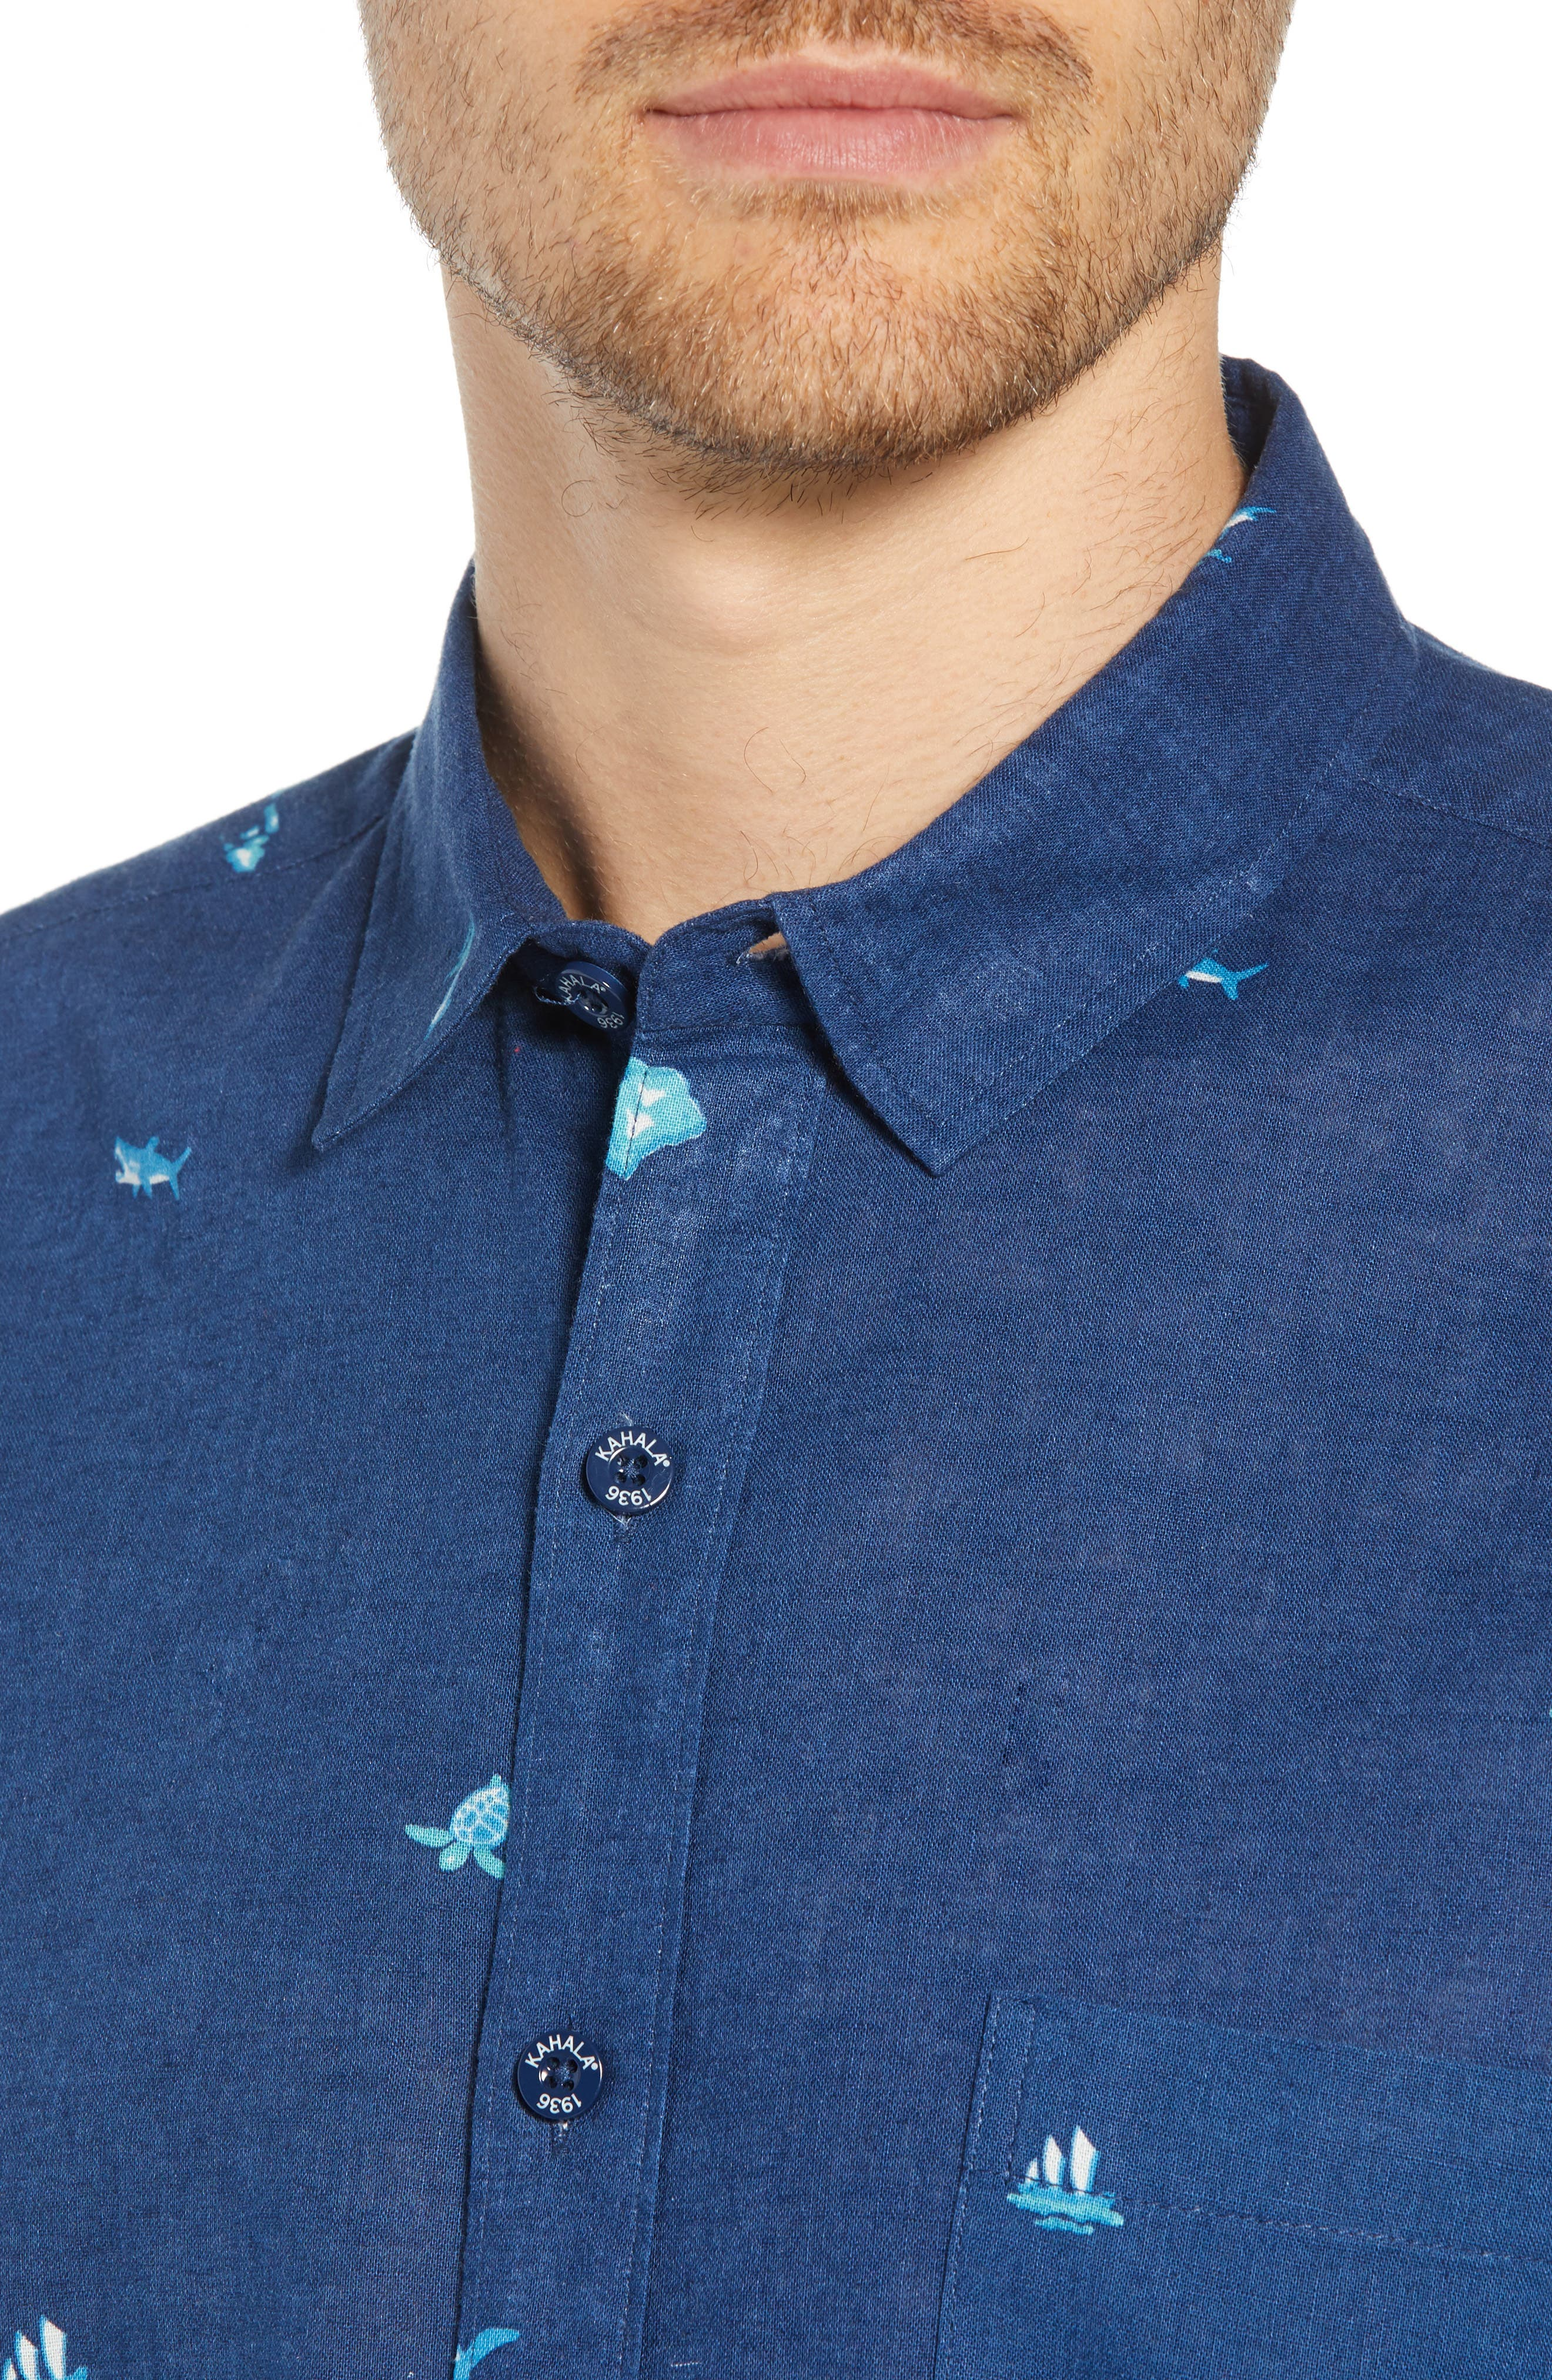 Uncharted Trim Fit Sport Shirt,                             Alternate thumbnail 4, color,                             NAVY